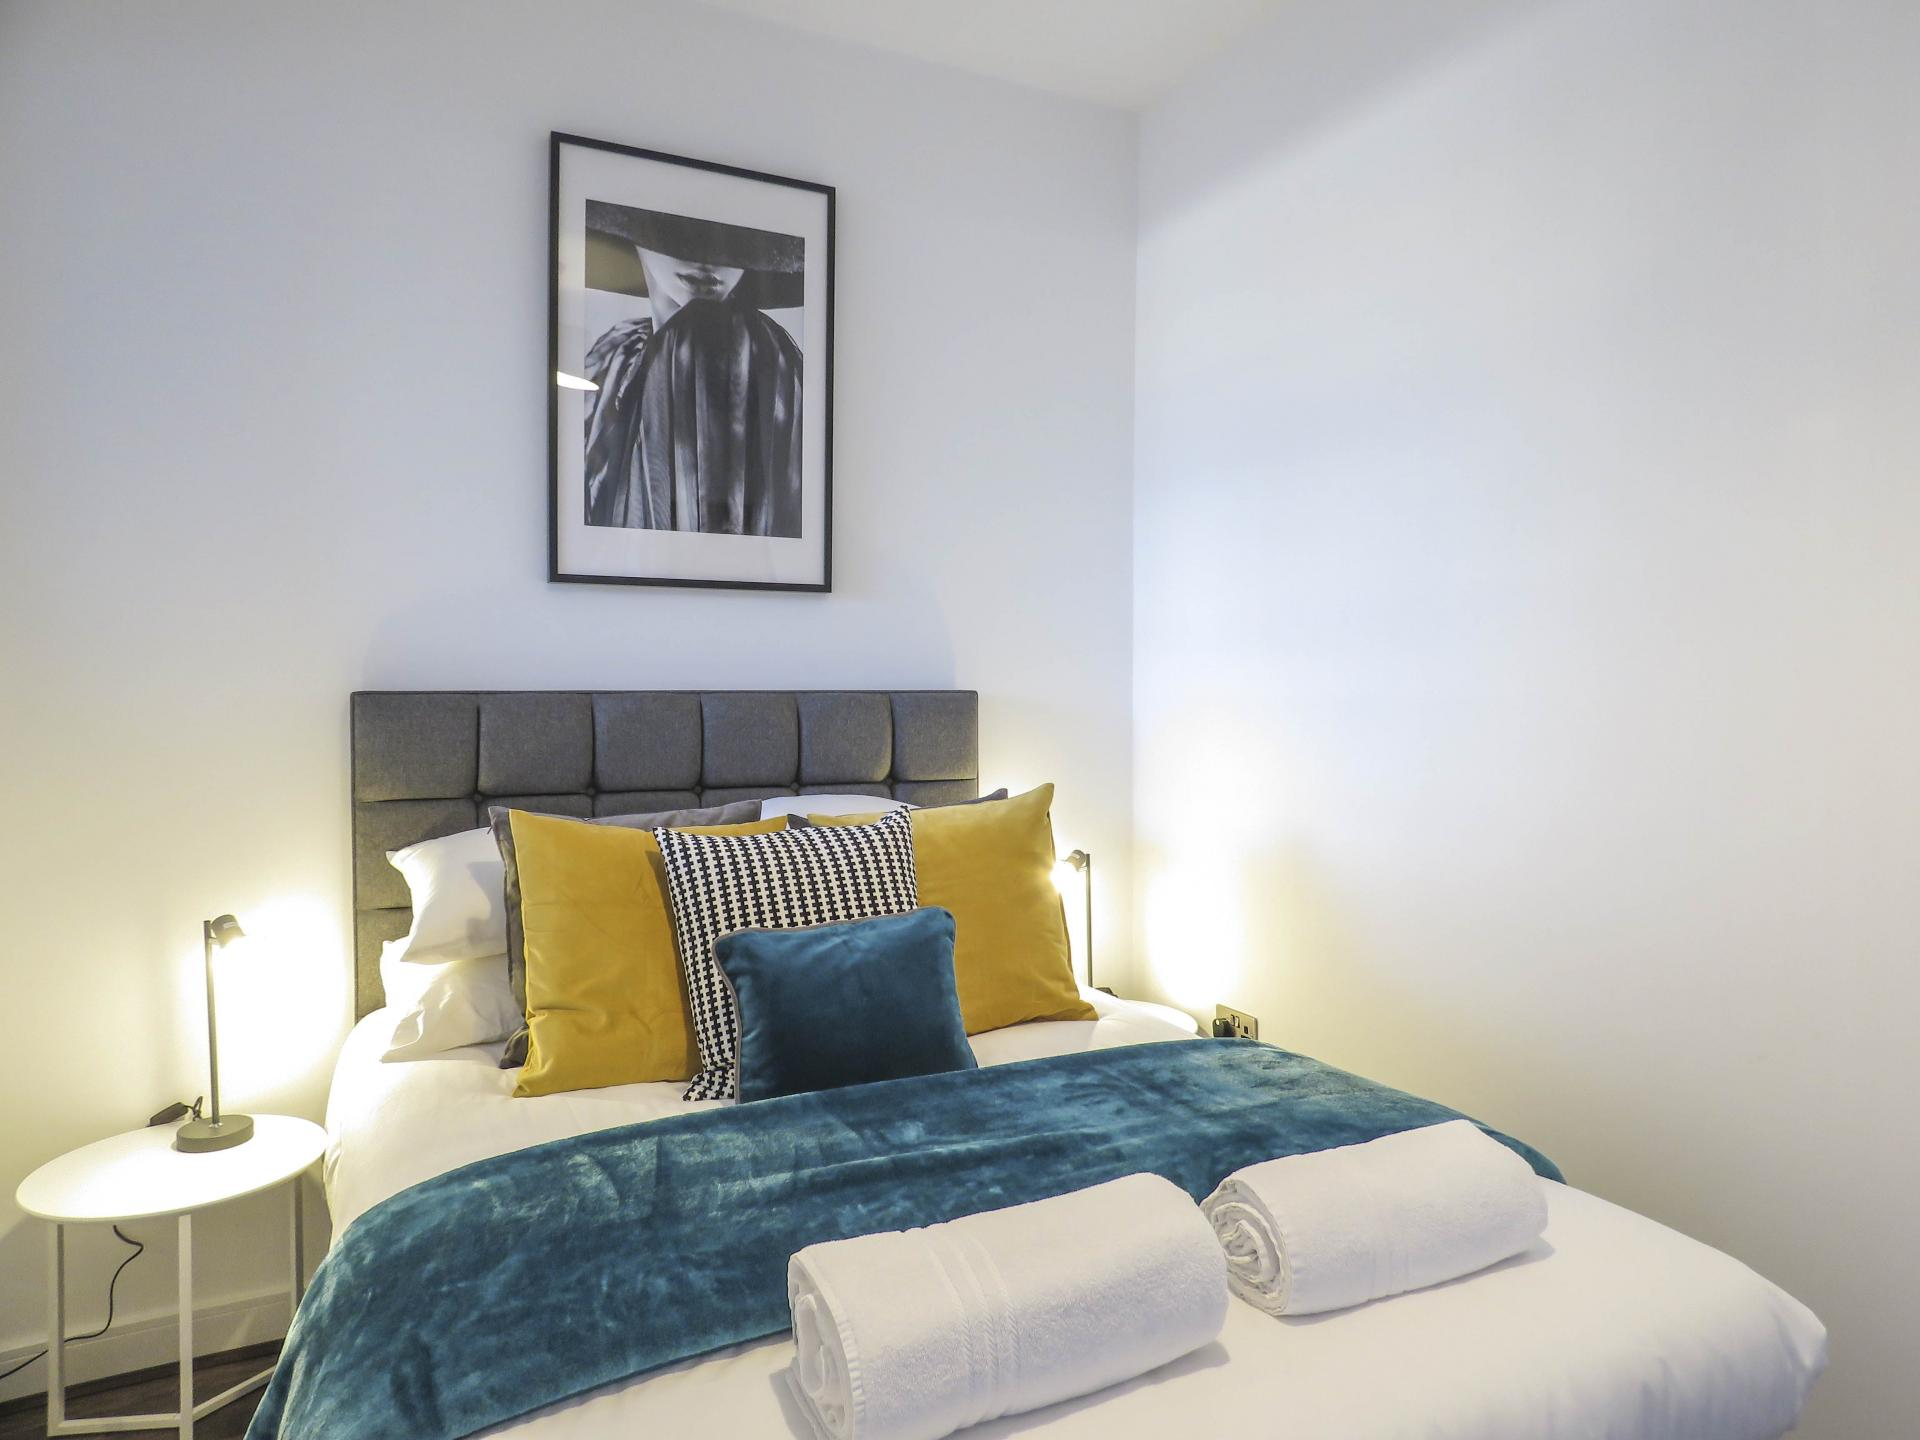 Beds at Kettleworks Serviced Apartments